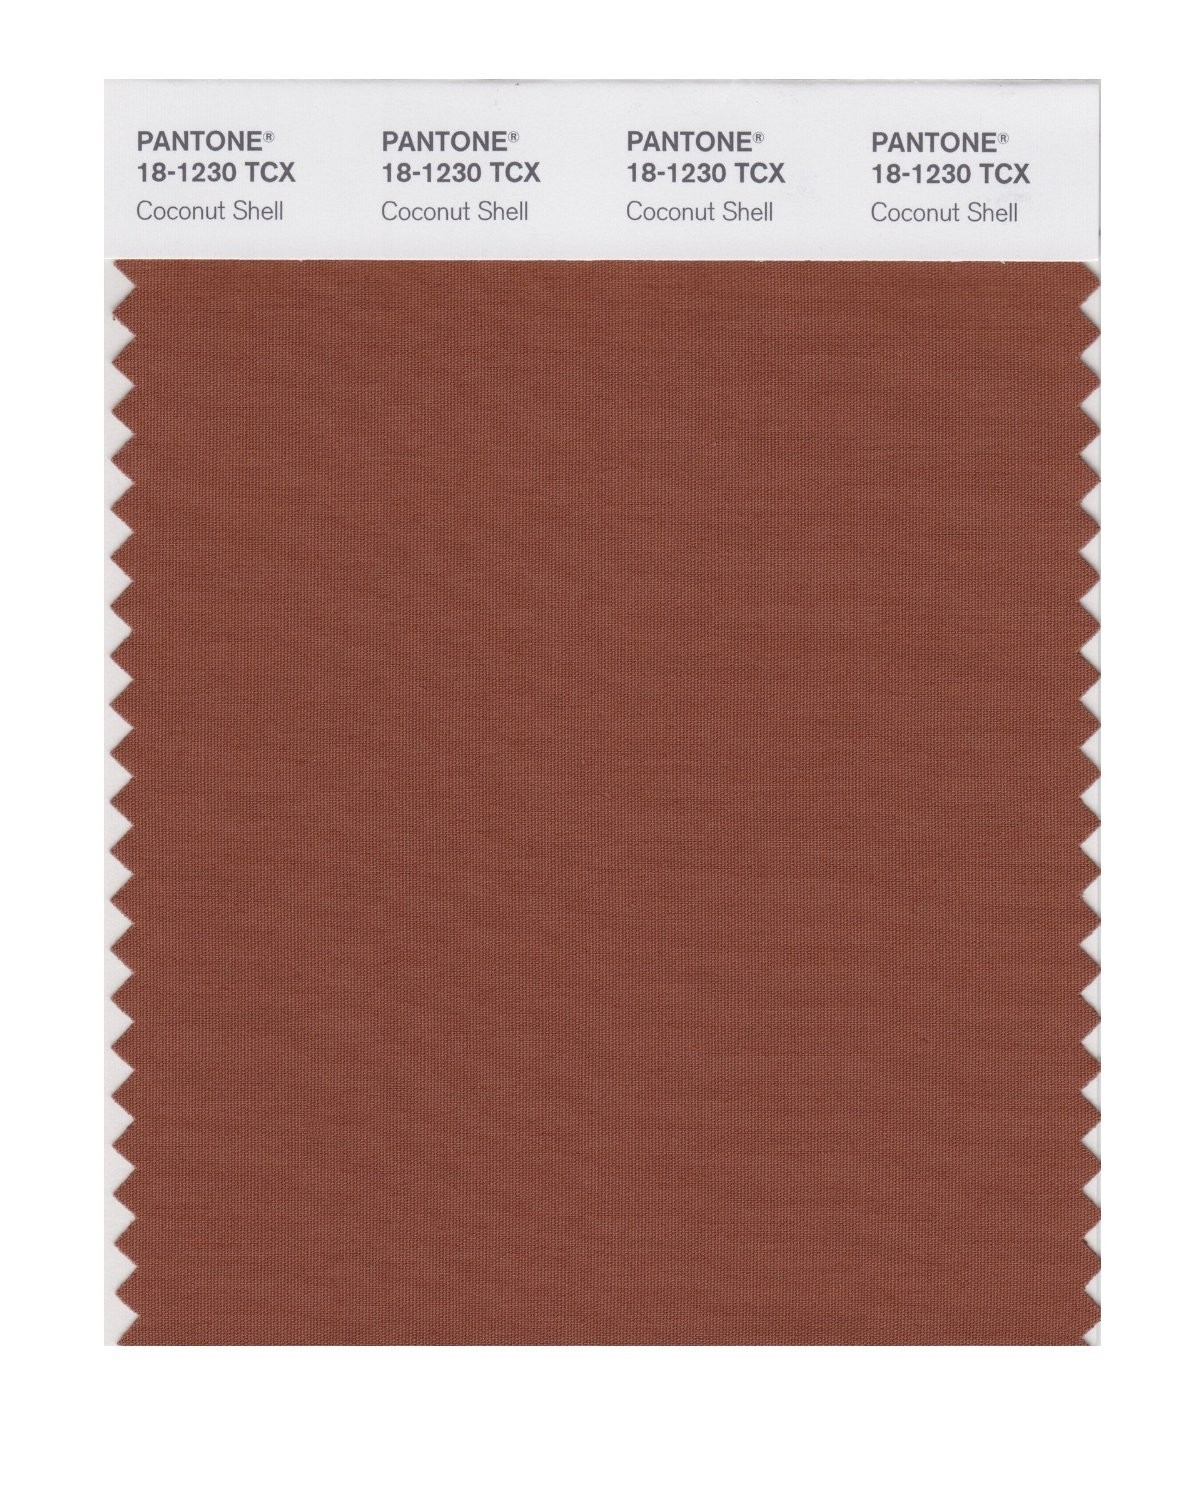 Pantone 18-1230 TCX Swatch Card Coconut Shell